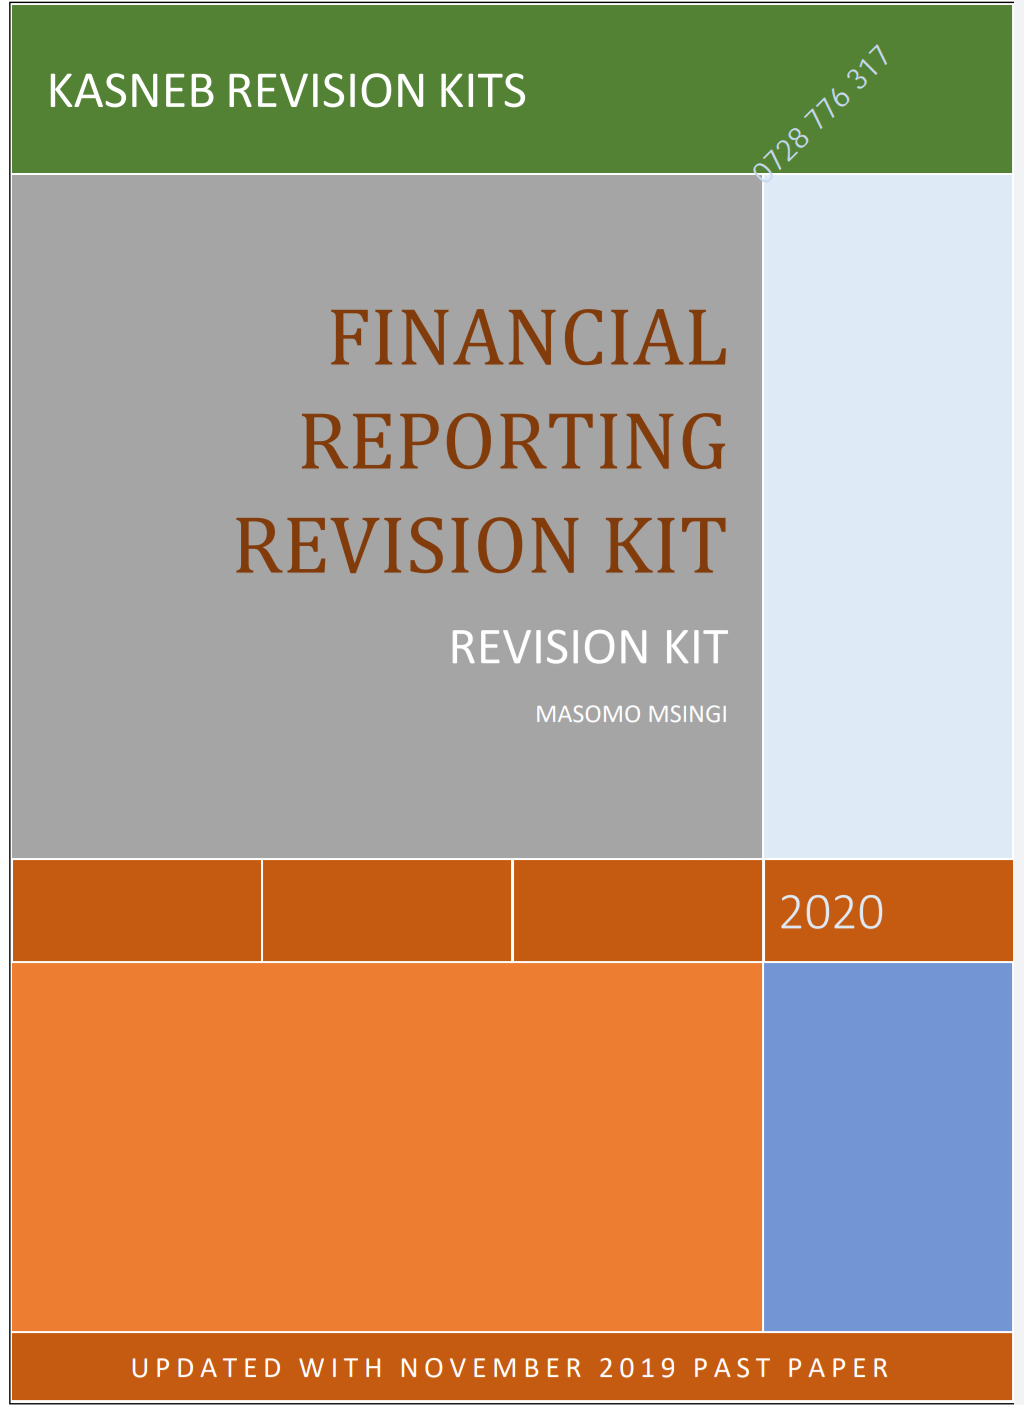 FINANCIAL REPORTING QUESTION AND ANSWER